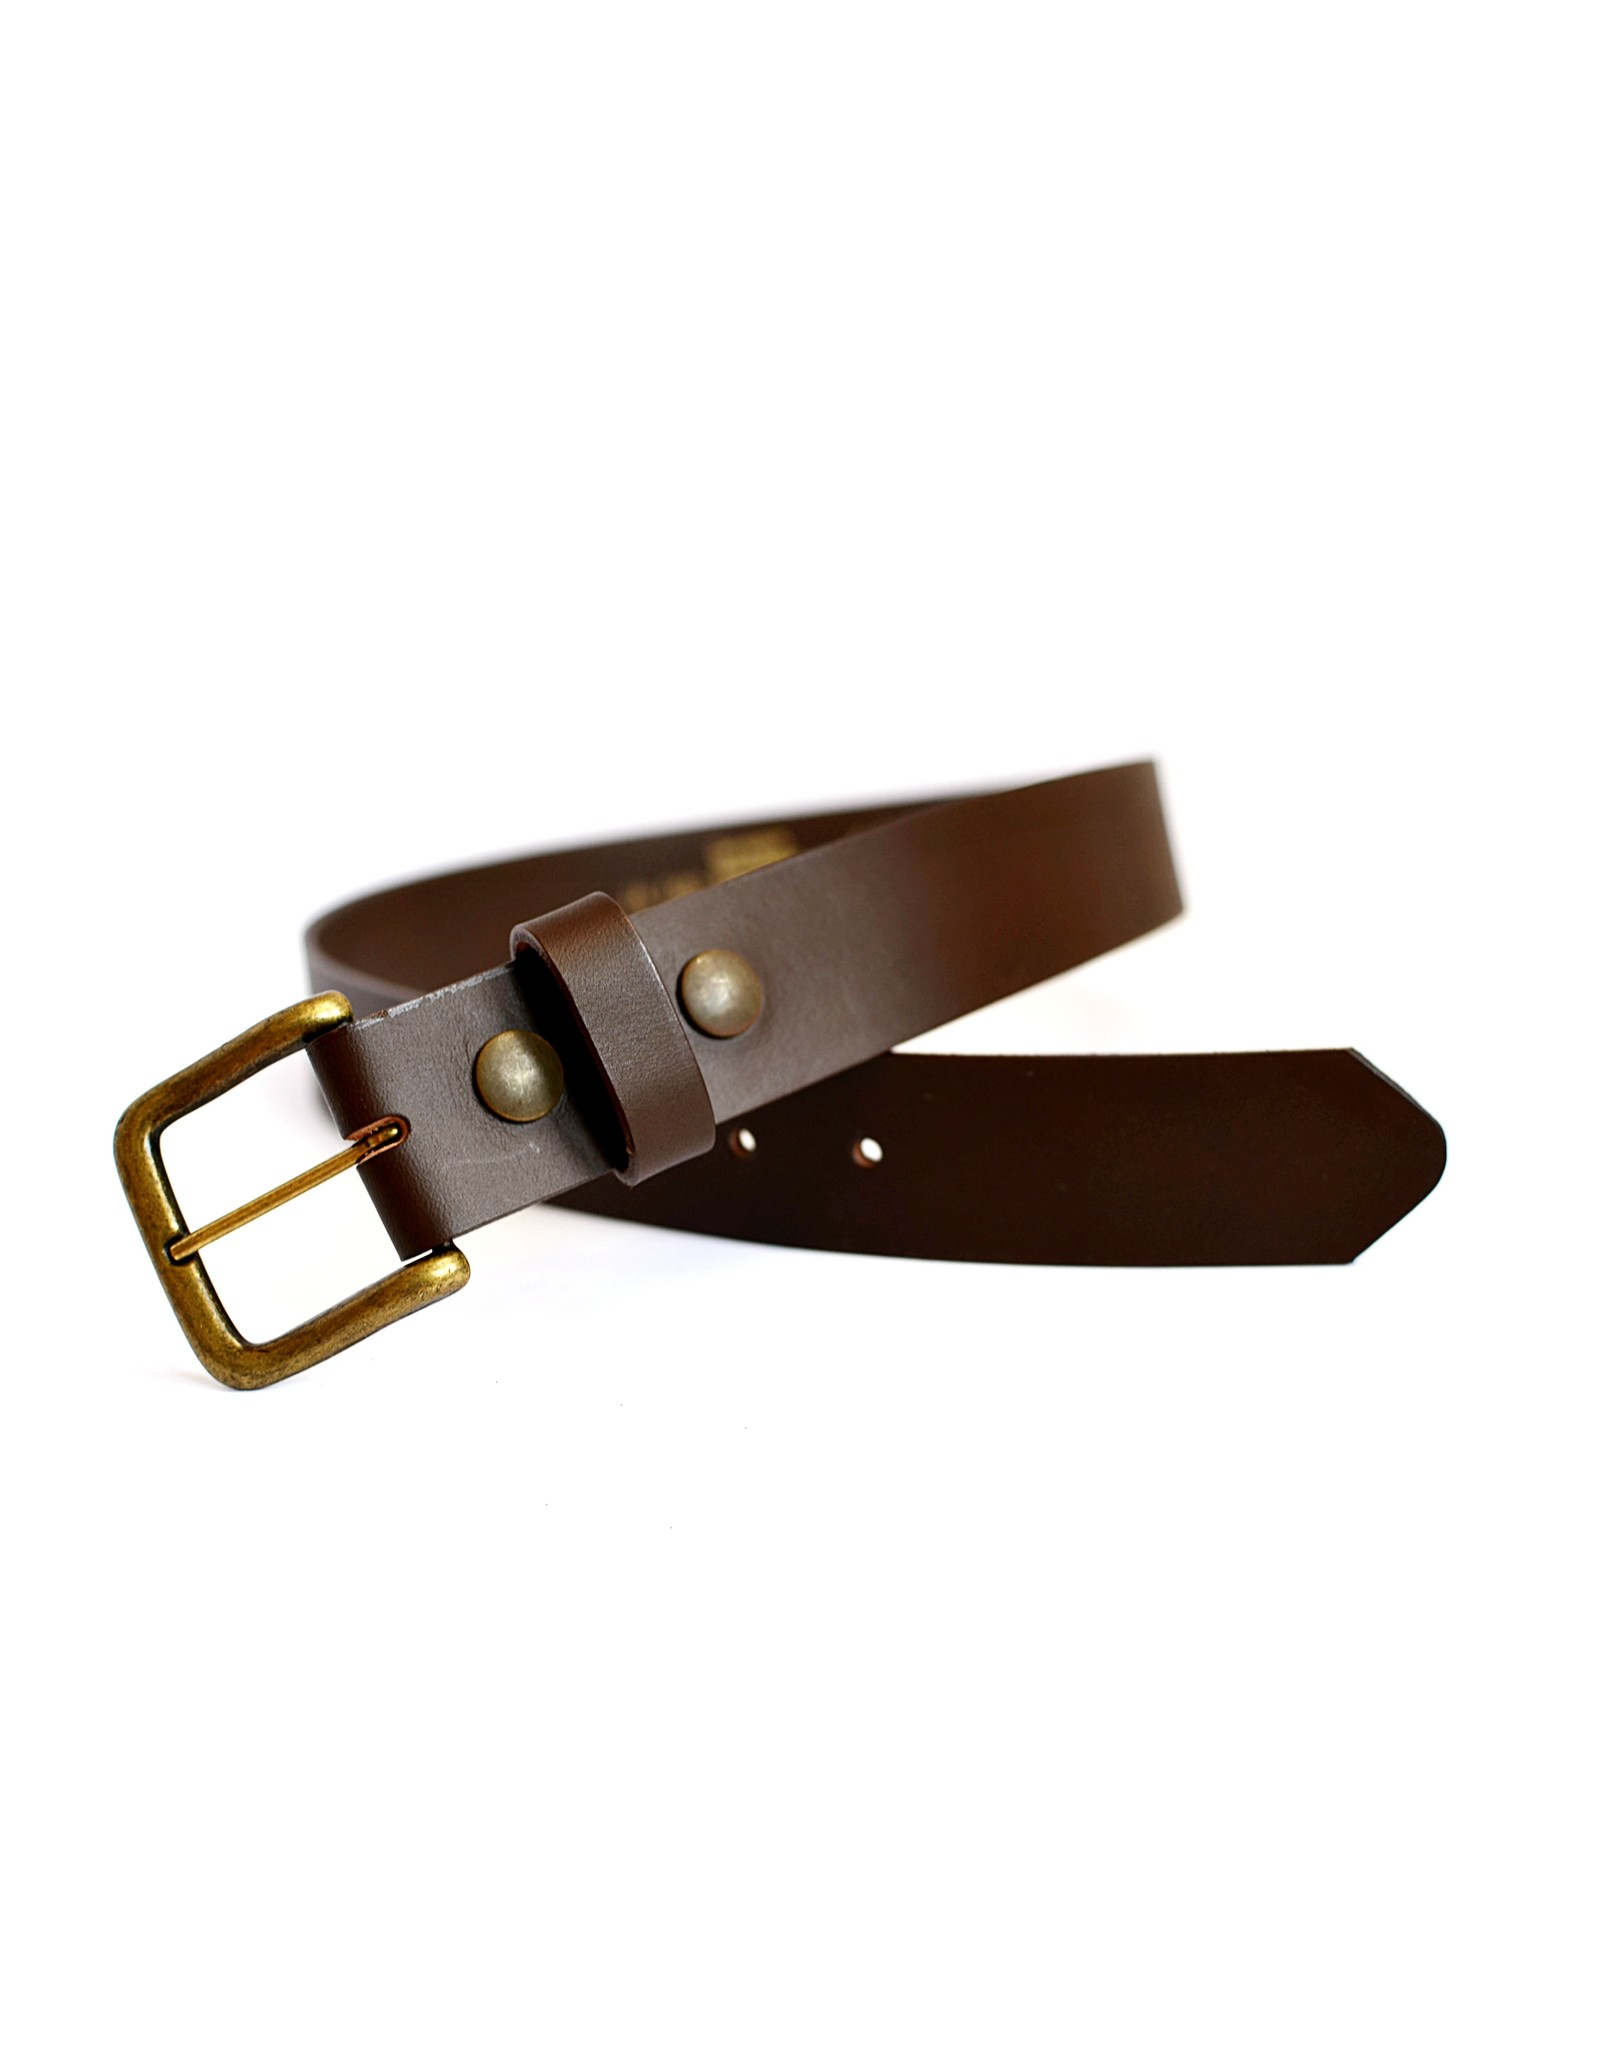 J Audet Jr Belt JA100 Premium Italian Leather